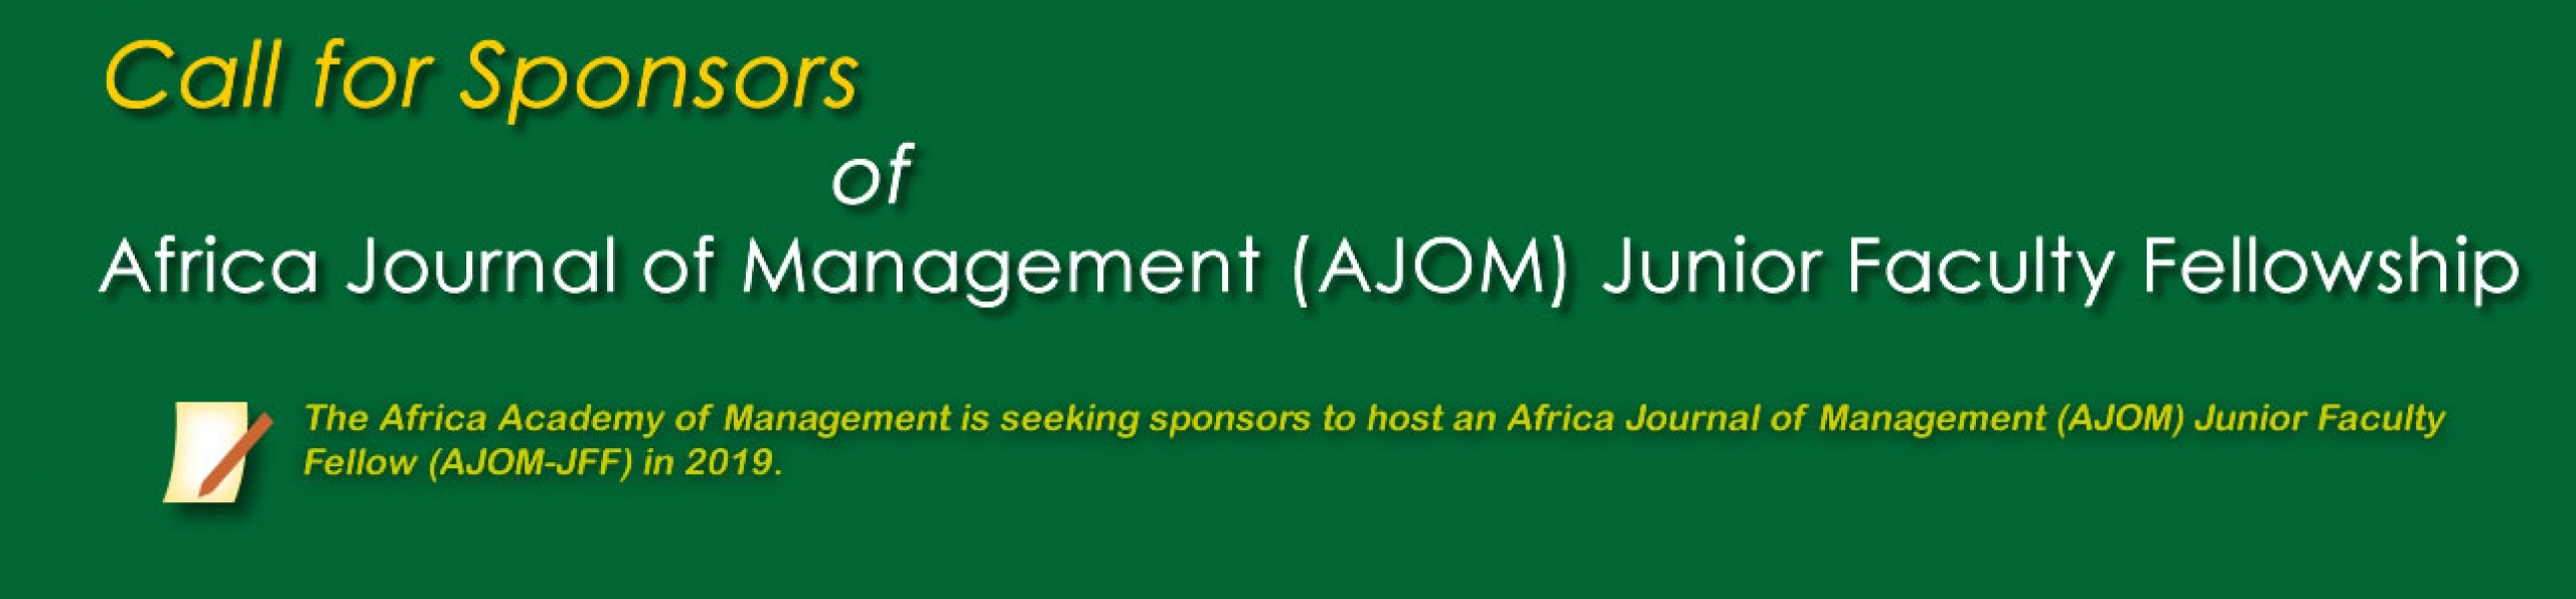 Call for Sponsors Africa Journal of Management (AJOM) Junior Faculty Fellowship